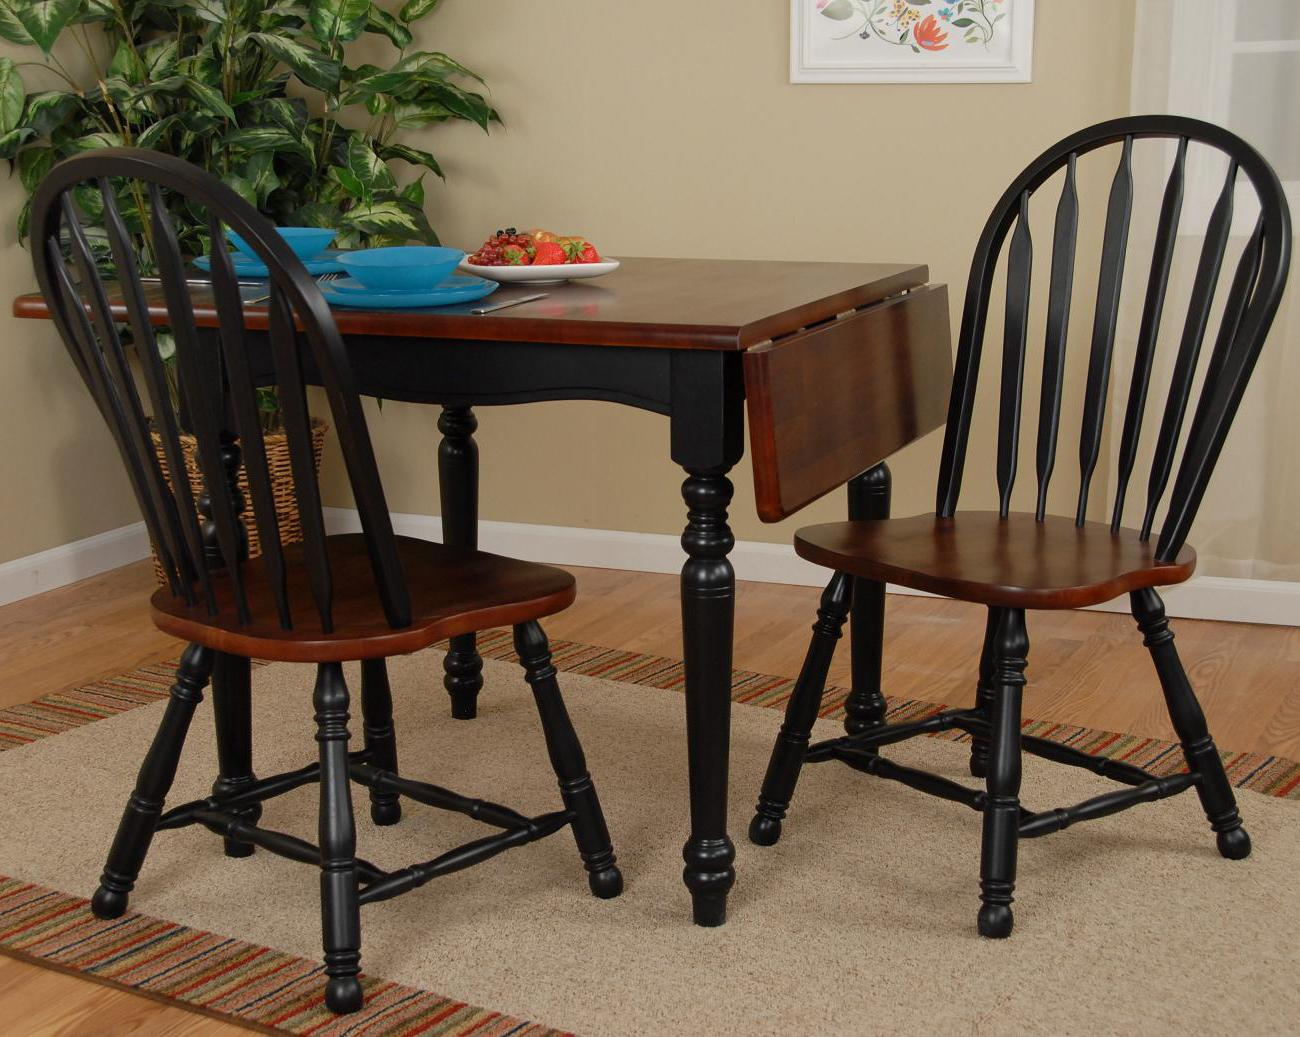 Ligo Products Country Classics Casual Drop Leaf Dining Table    BigFurnitureWebsite   Kitchen Table